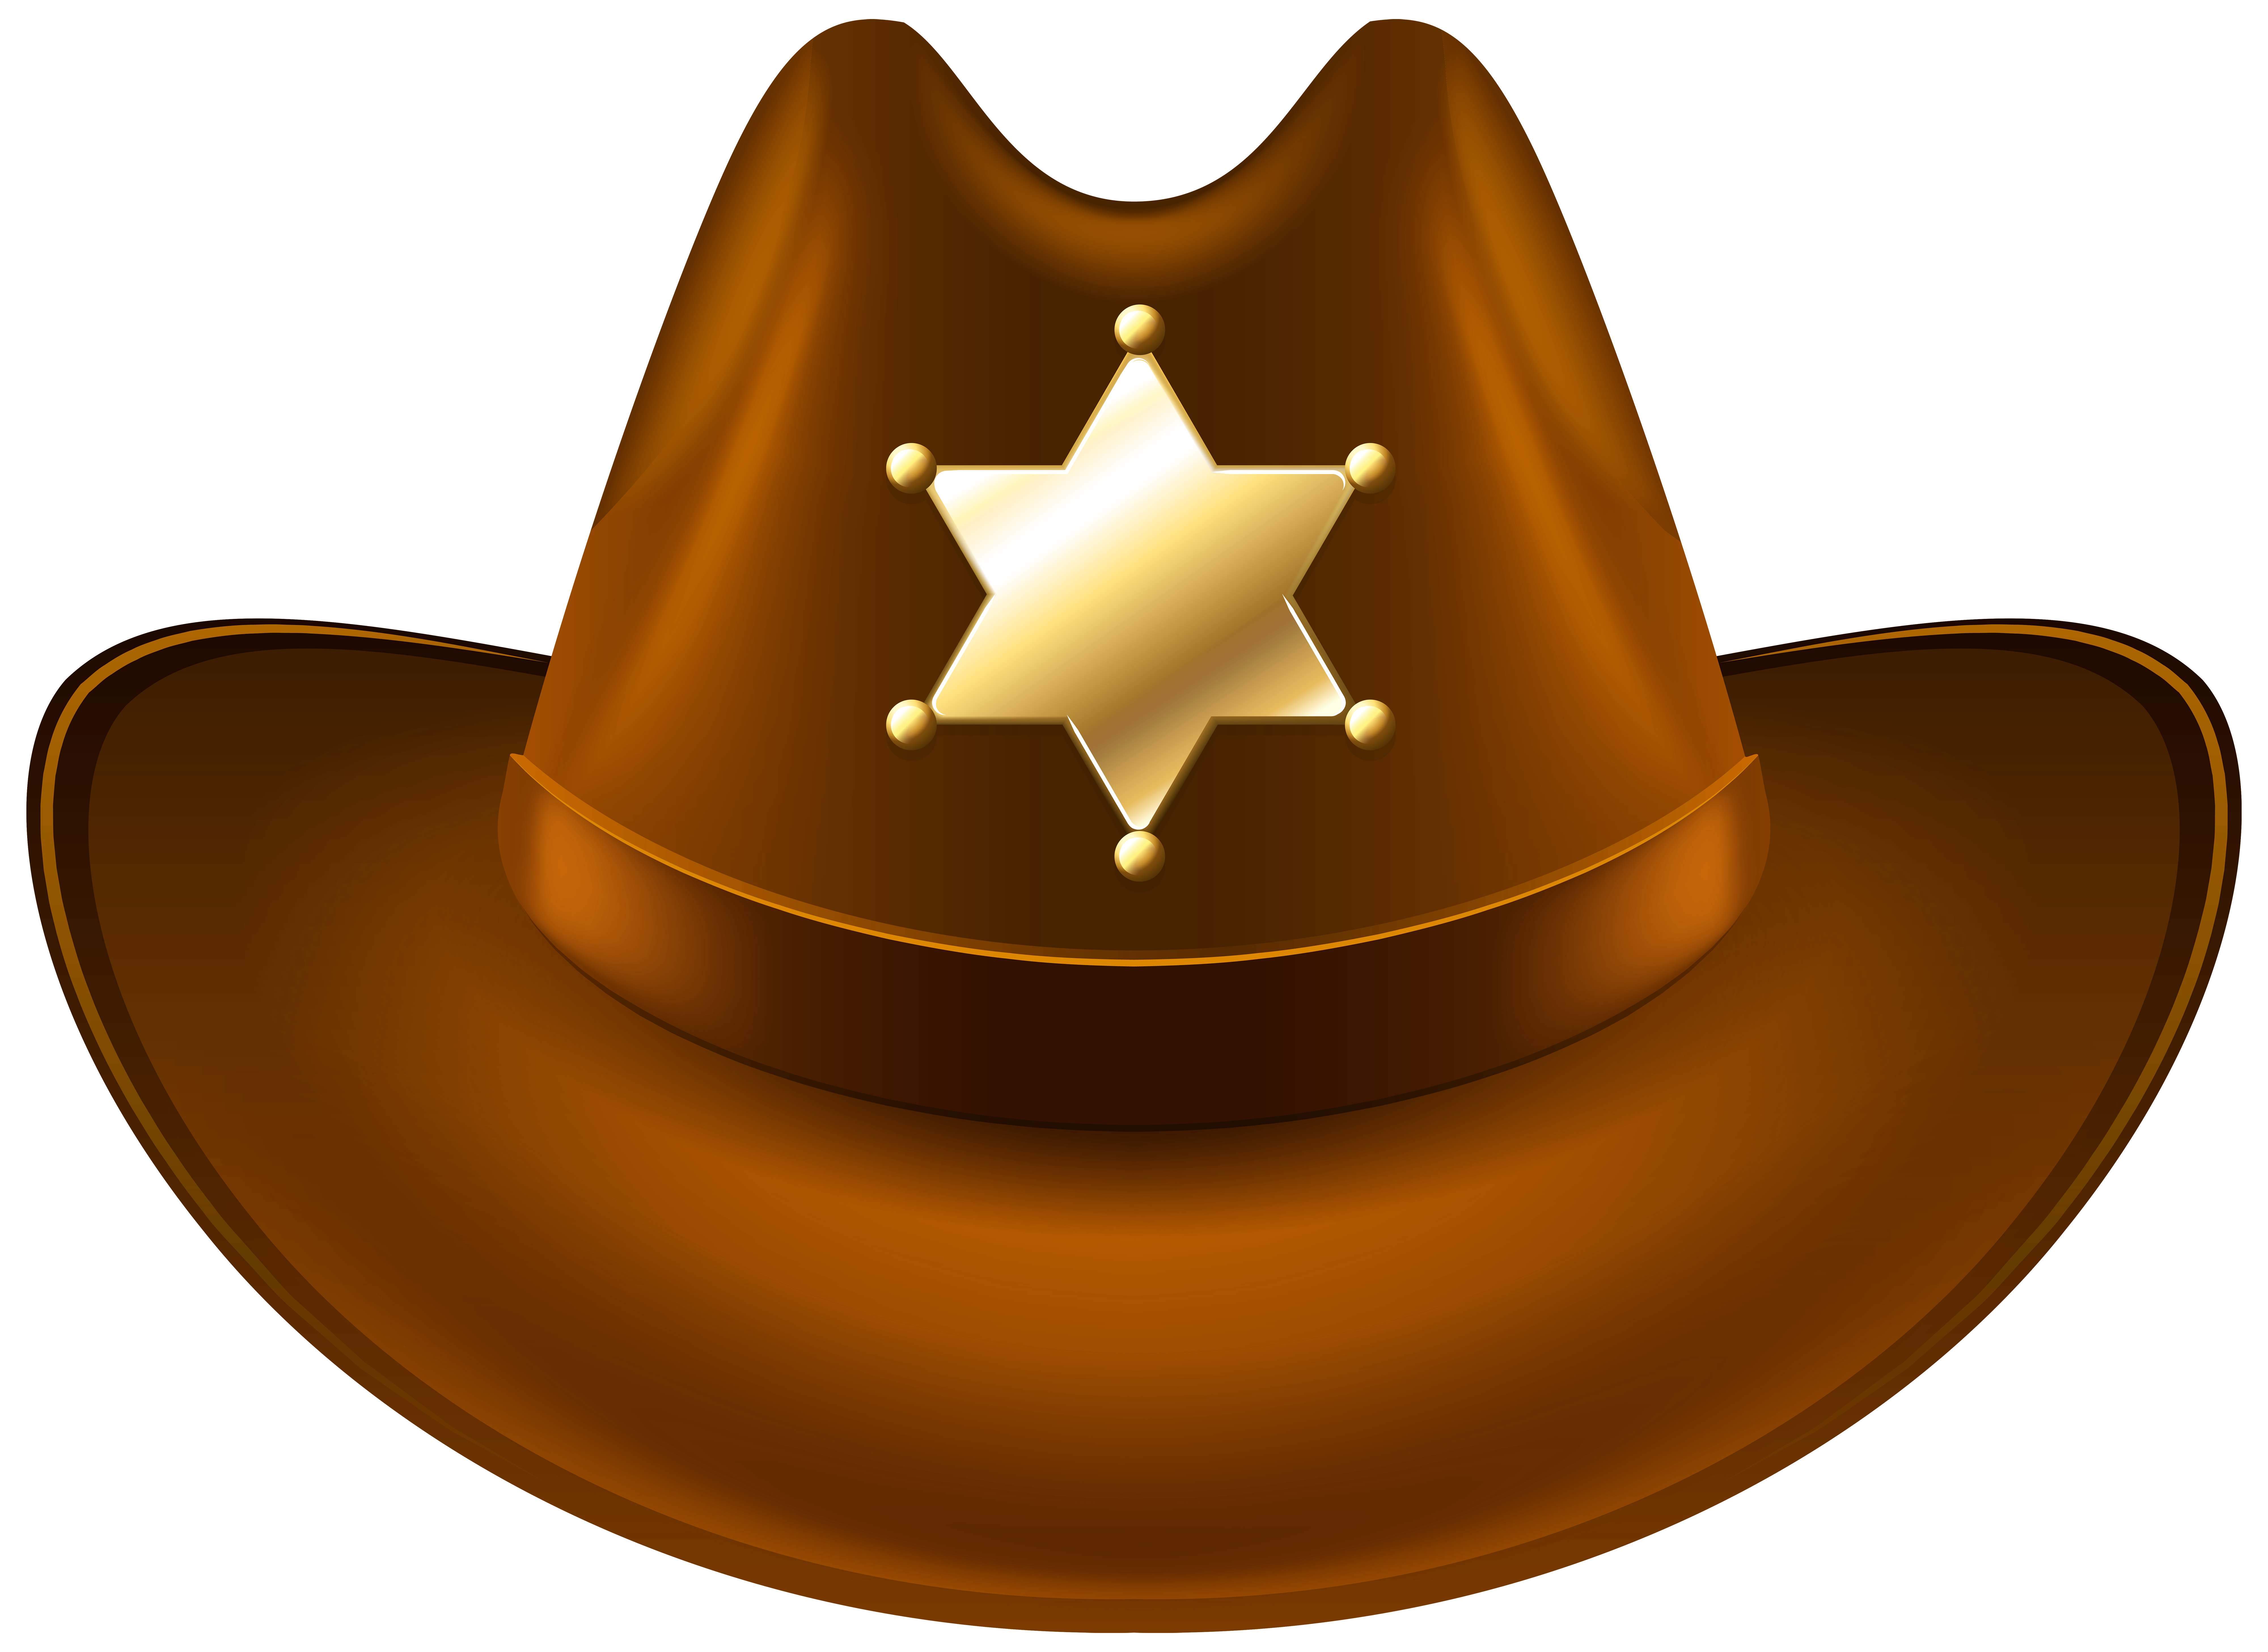 Cowboy football clipart clip art freeuse download Cowboy Hat with Sheriff Badge Transparent PNG Clip Art Image ... clip art freeuse download